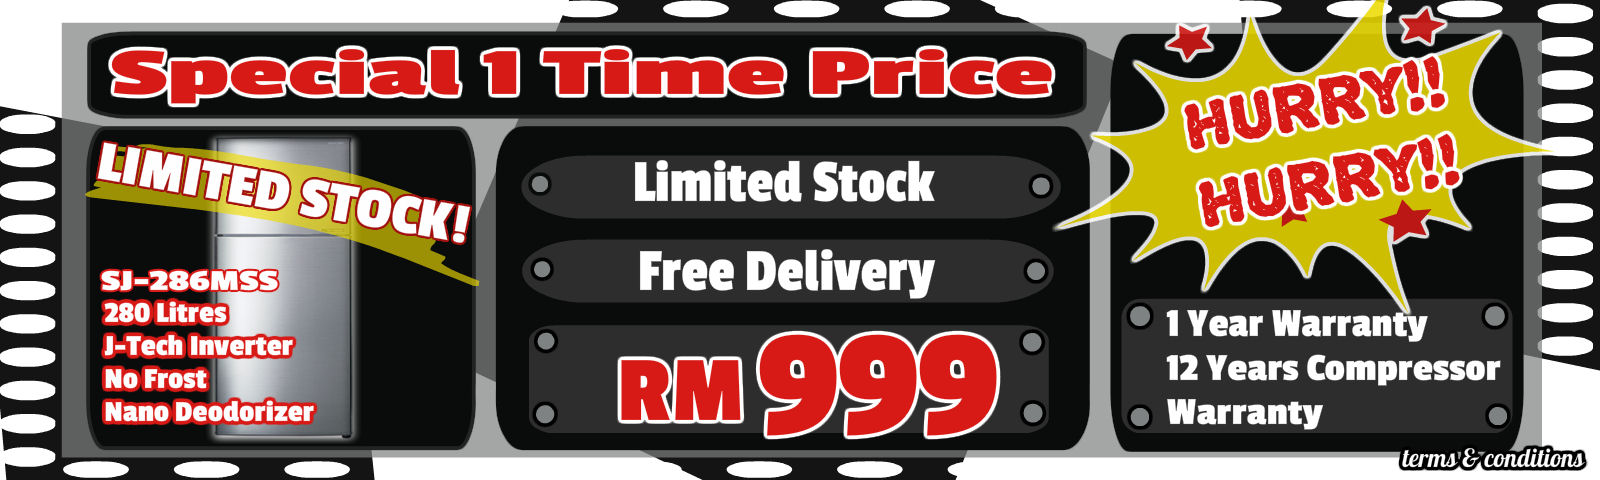 Sharp SJ-286mSS Promo For rm999..